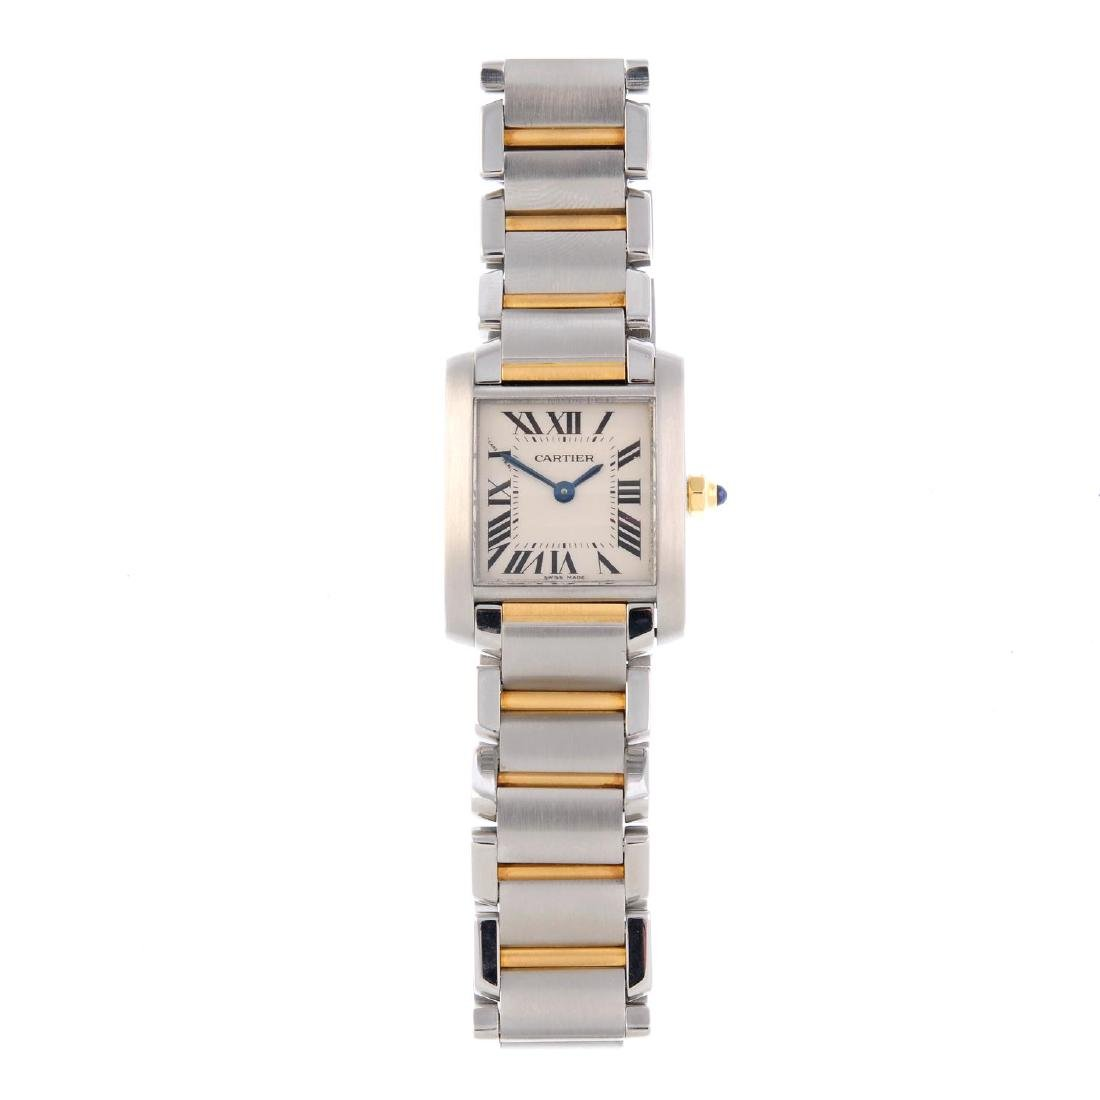 CARTIER - a Tank Francaise bracelet watch. Stainless